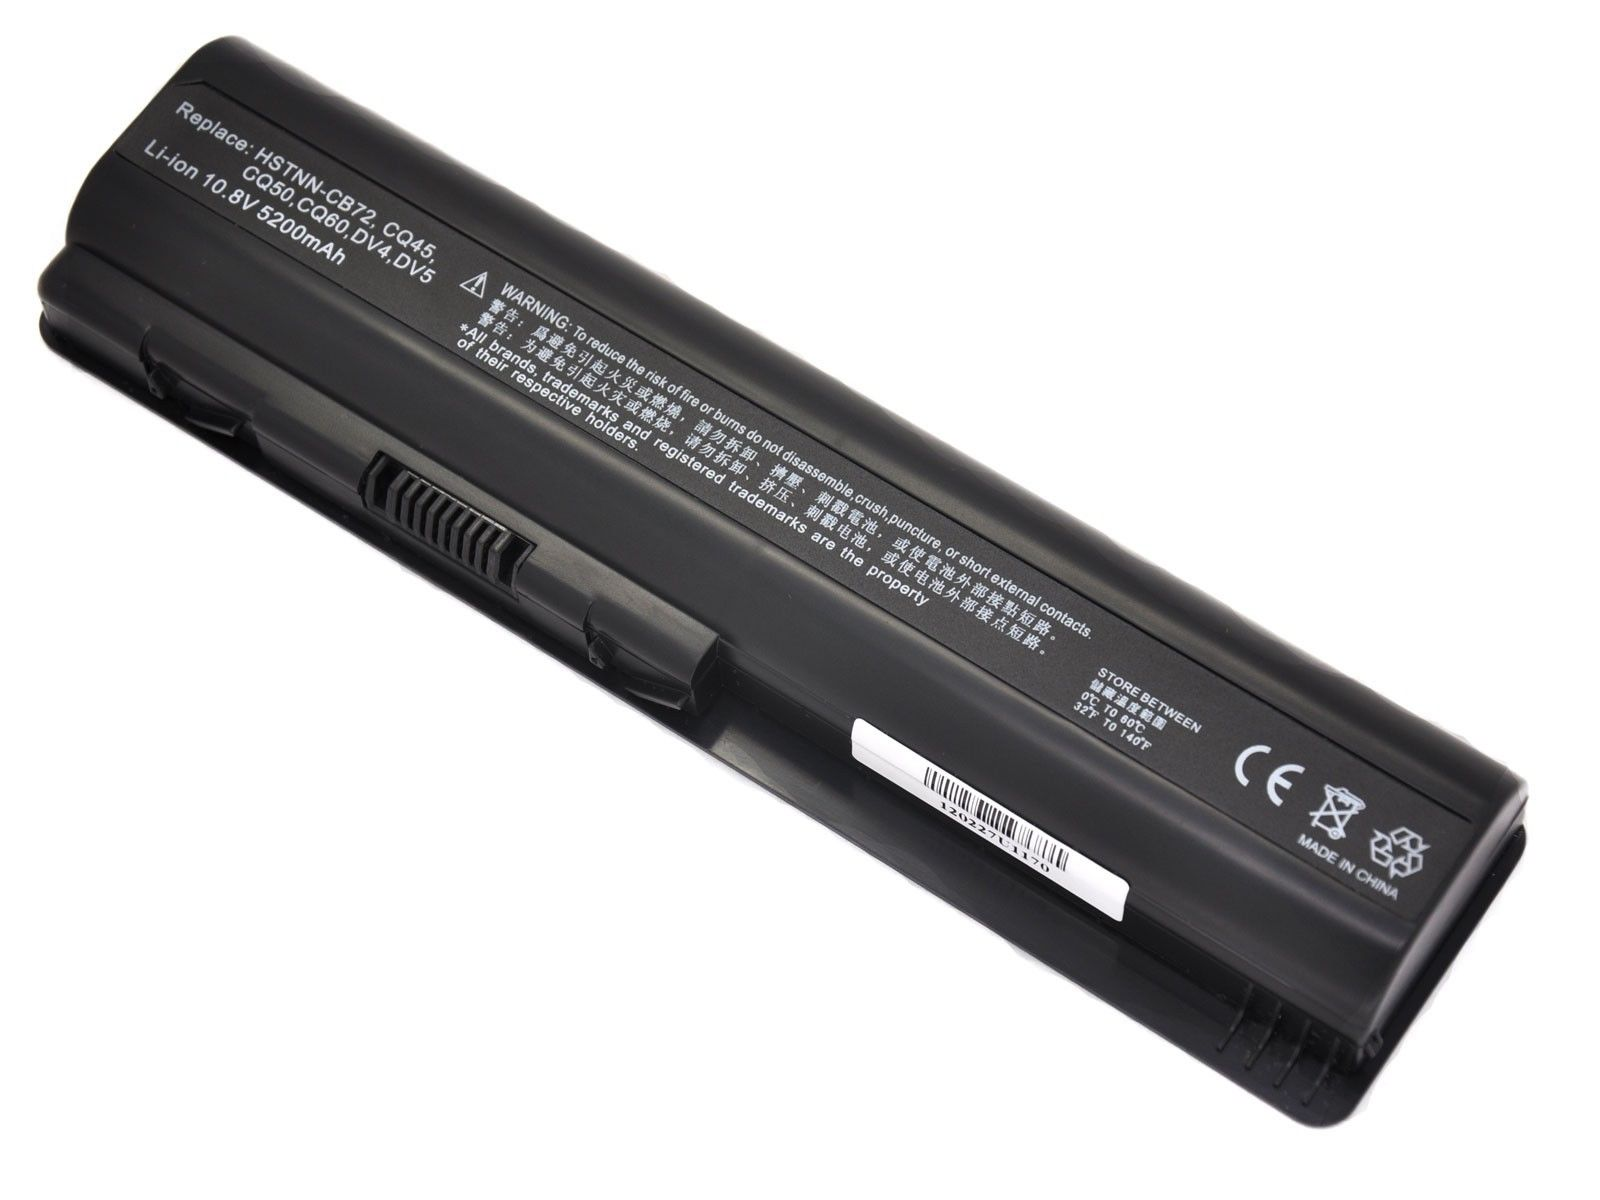 HP Pavilion dv4 Notebook Batteries